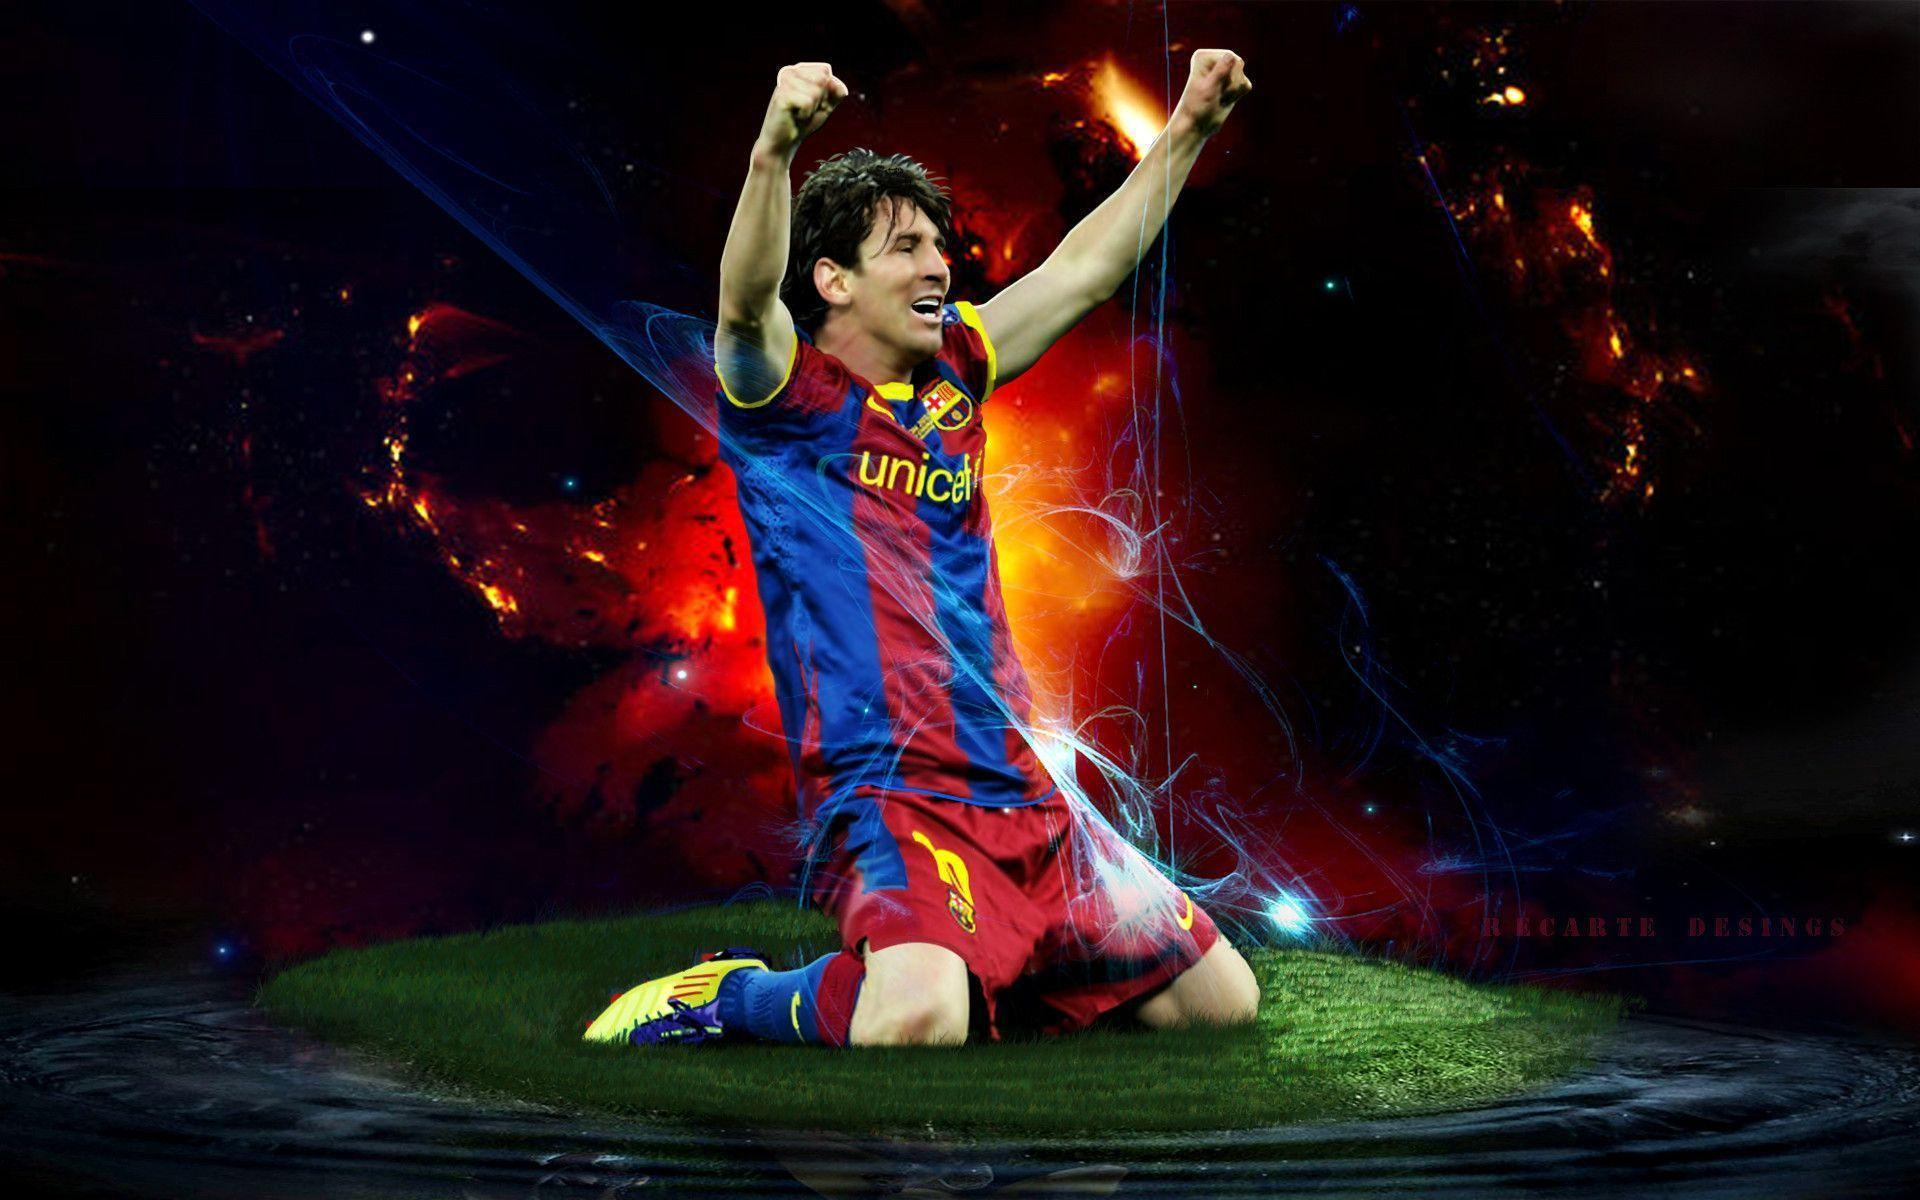 Lionel Messi Wallpaper 2014 - HD Res - Football Wallpaper HD ...